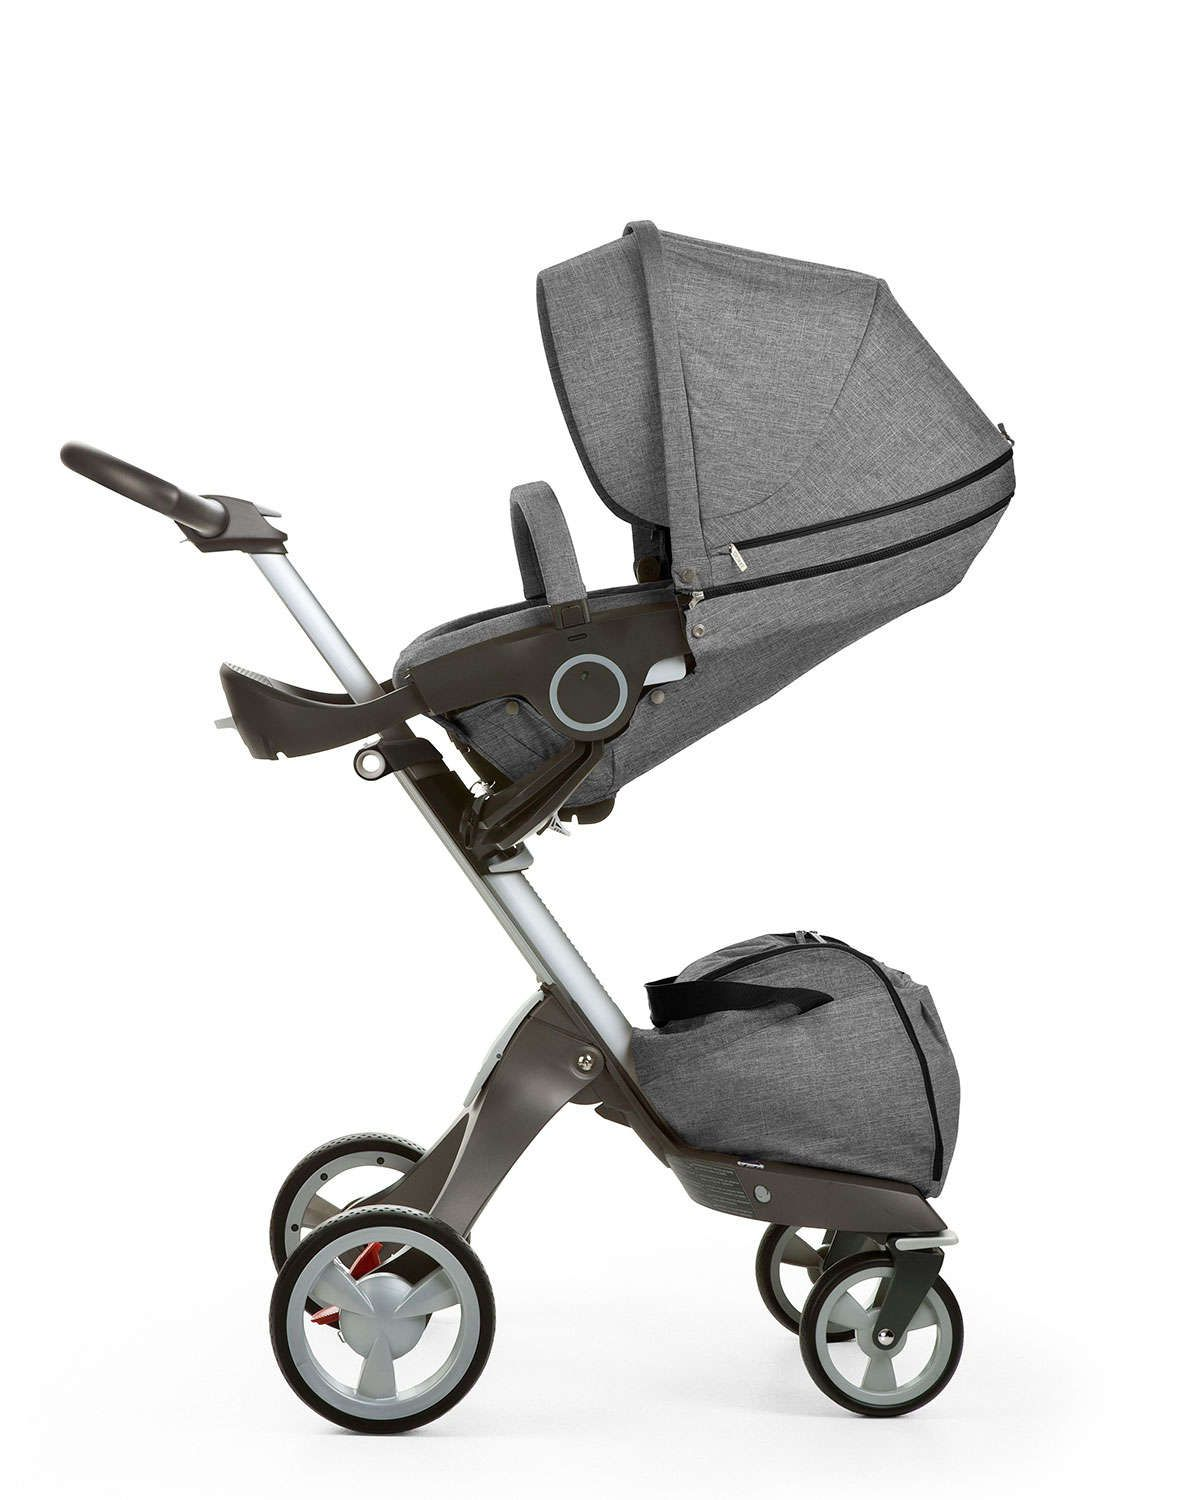 Stokke Stroller Store Xplory Adjustable Stroller Baby Bump Down The Road